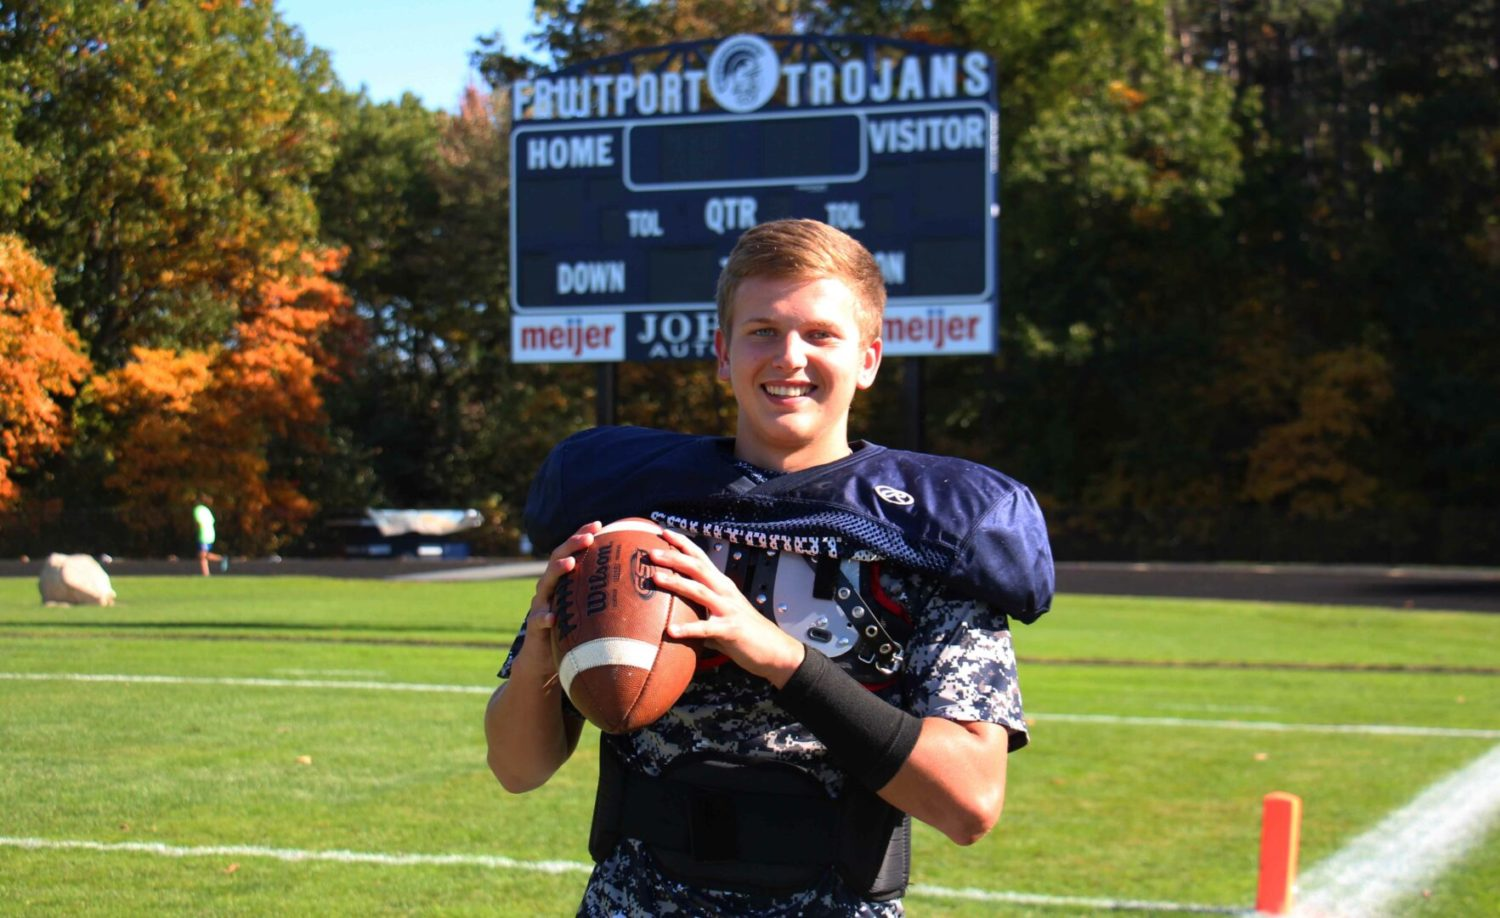 Fruitport quarterback Jarod Wierengo is using his dual-threat skills to help secure a playoff spot for the Trojans